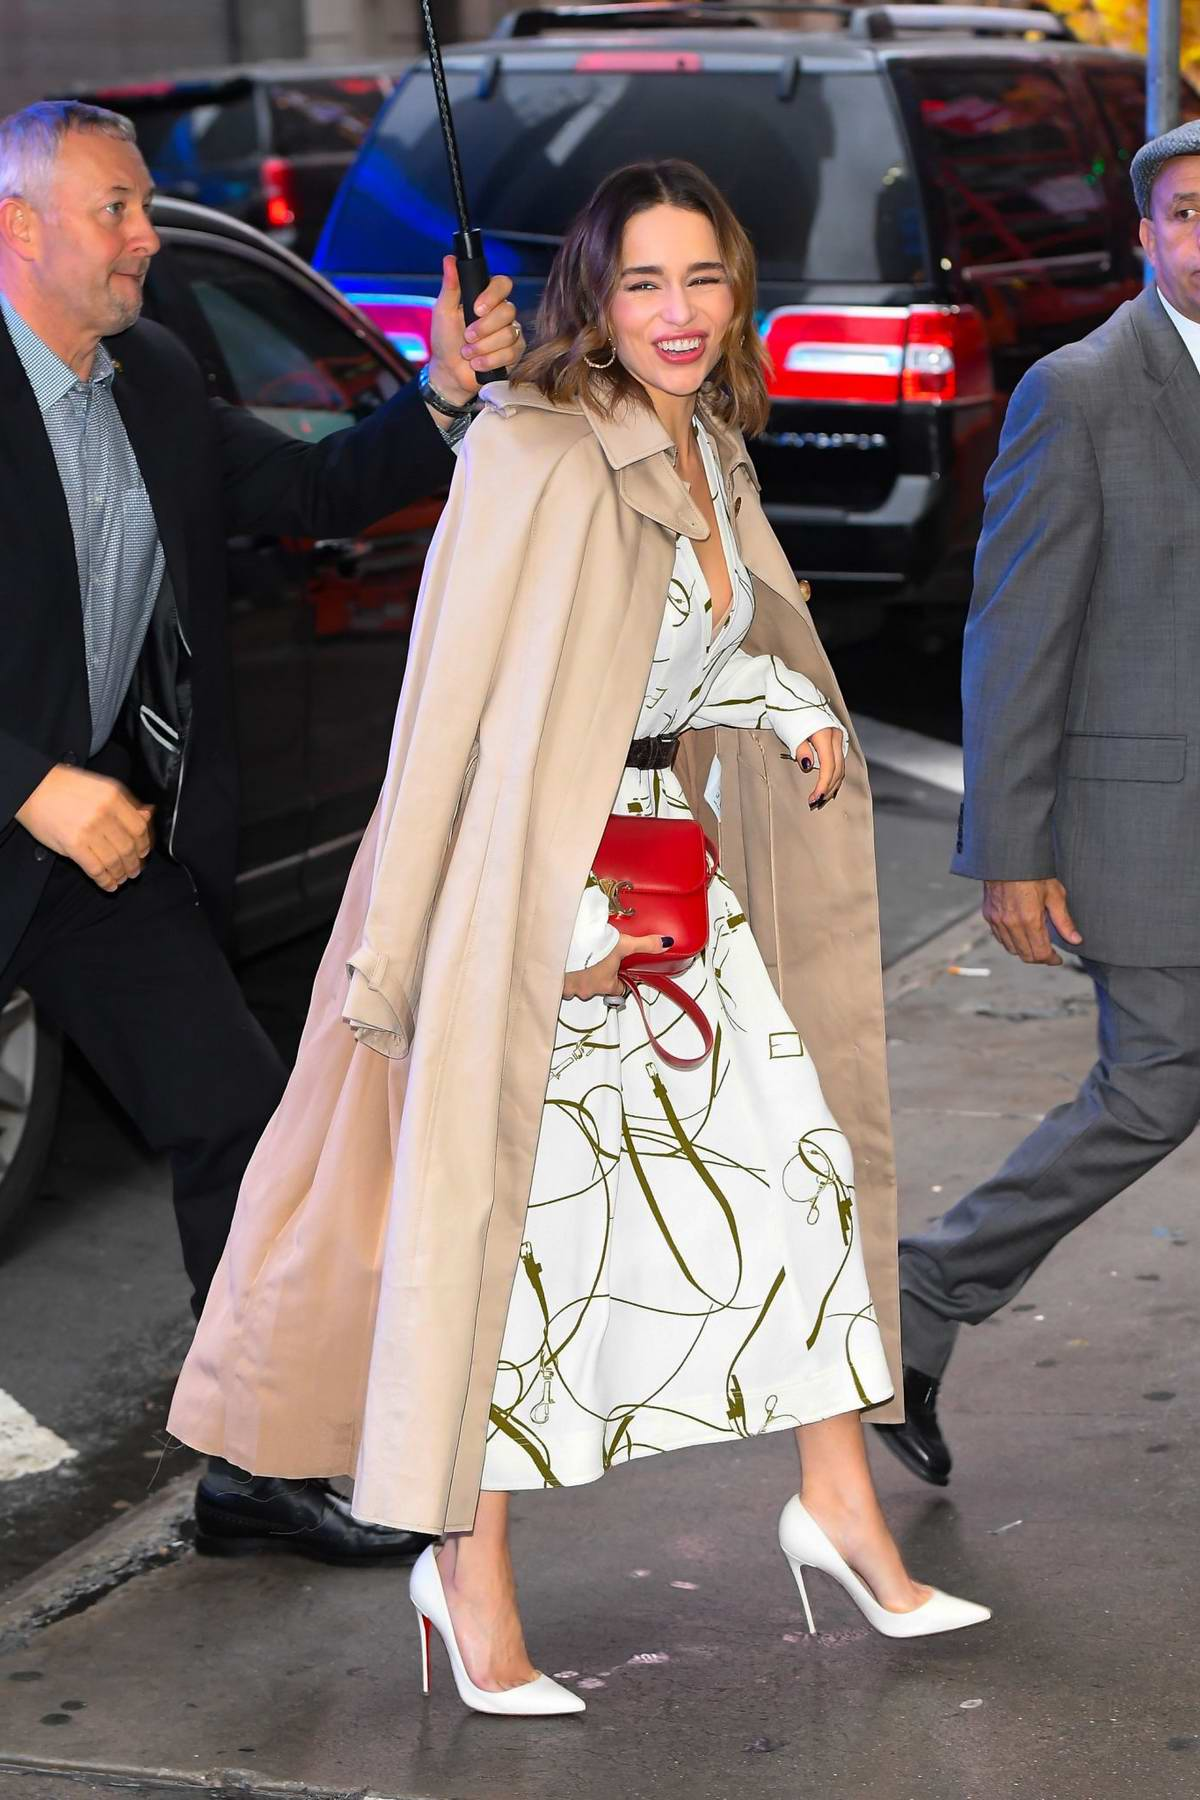 Emilia Clarke looks lovely in a white dress as she arriving at Good Morning America in New York City